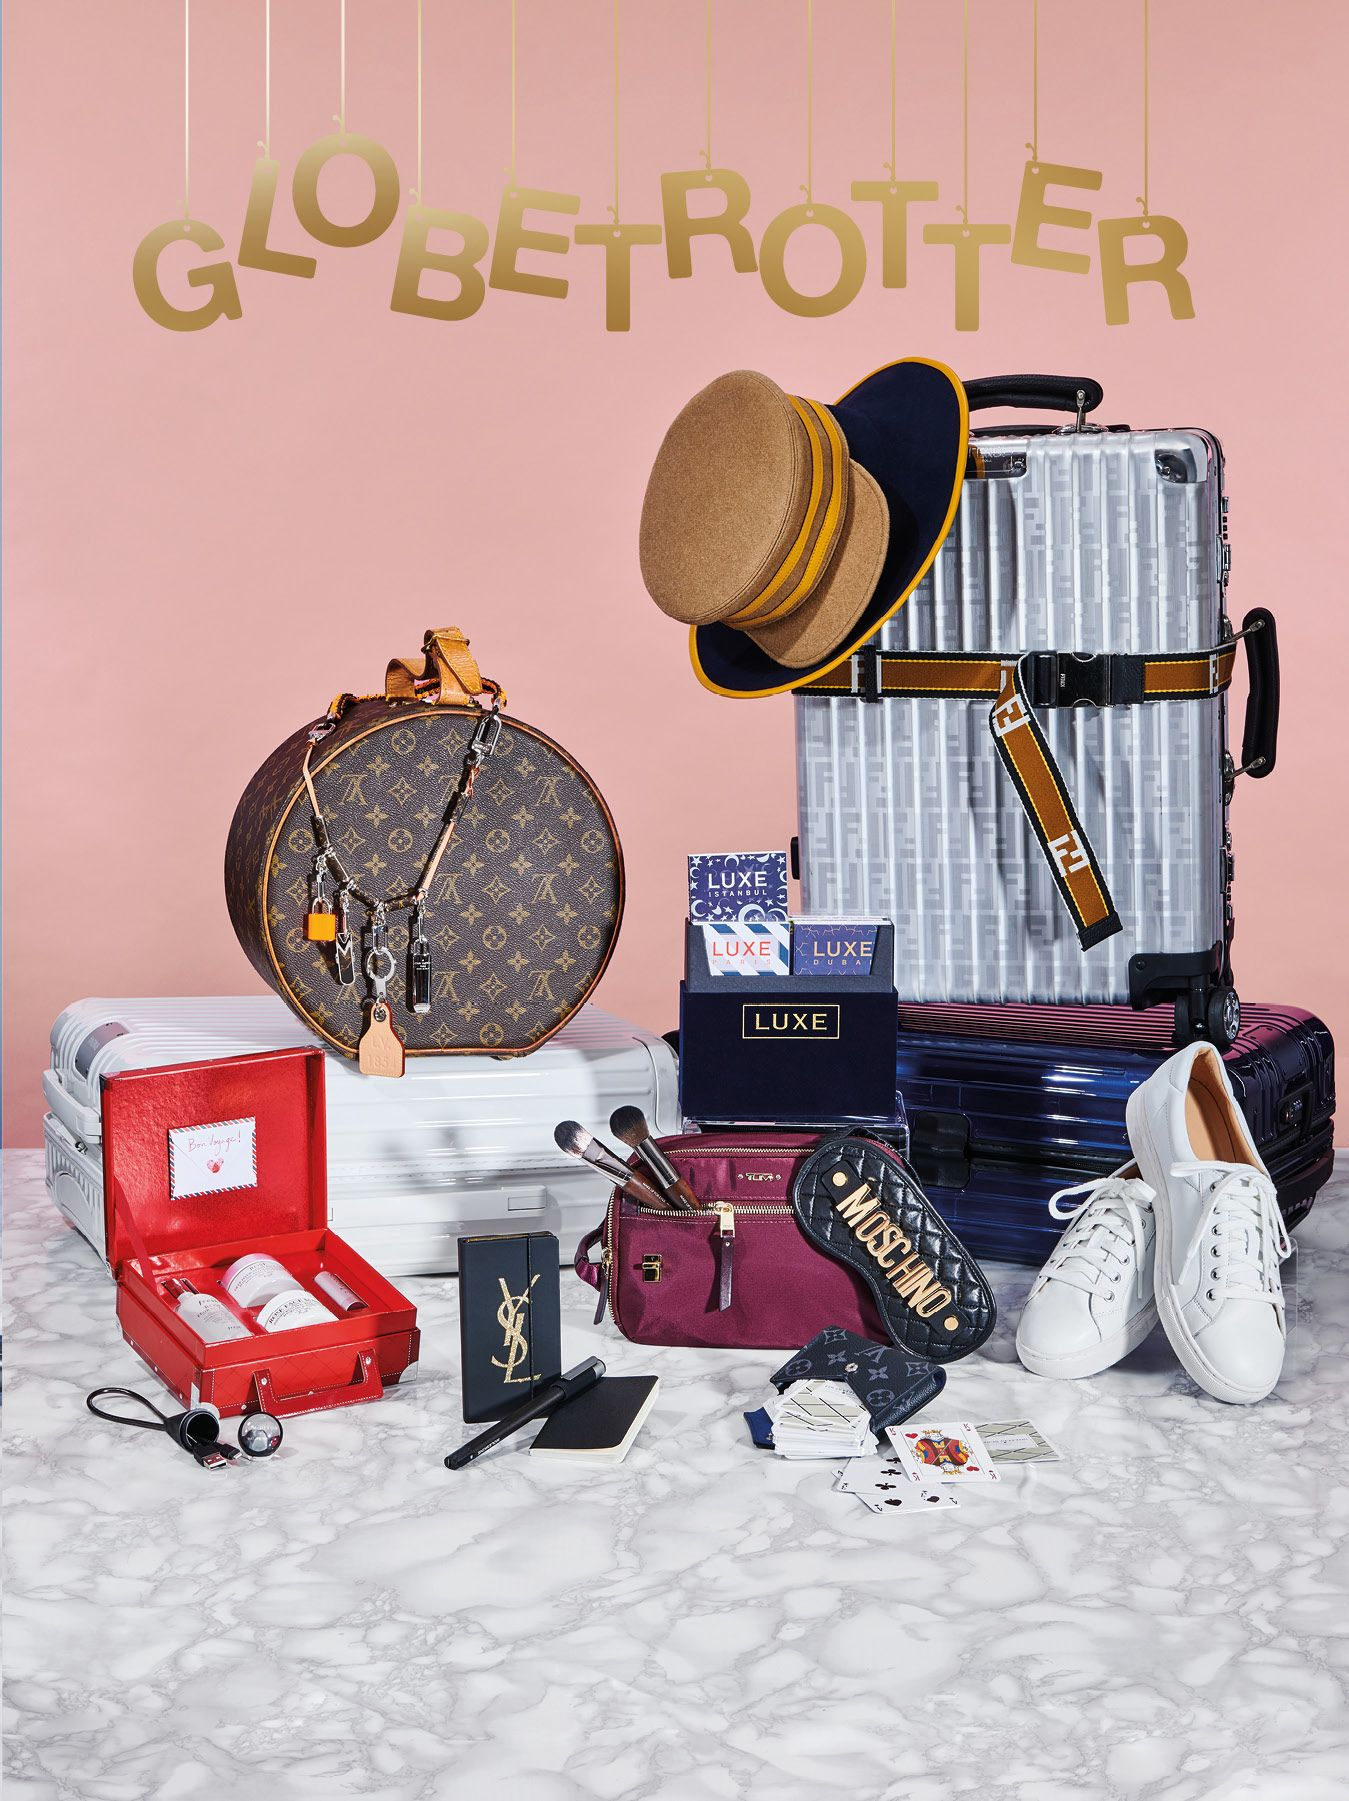 20 Travel-Inspired Gift Ideas For Globetrotters